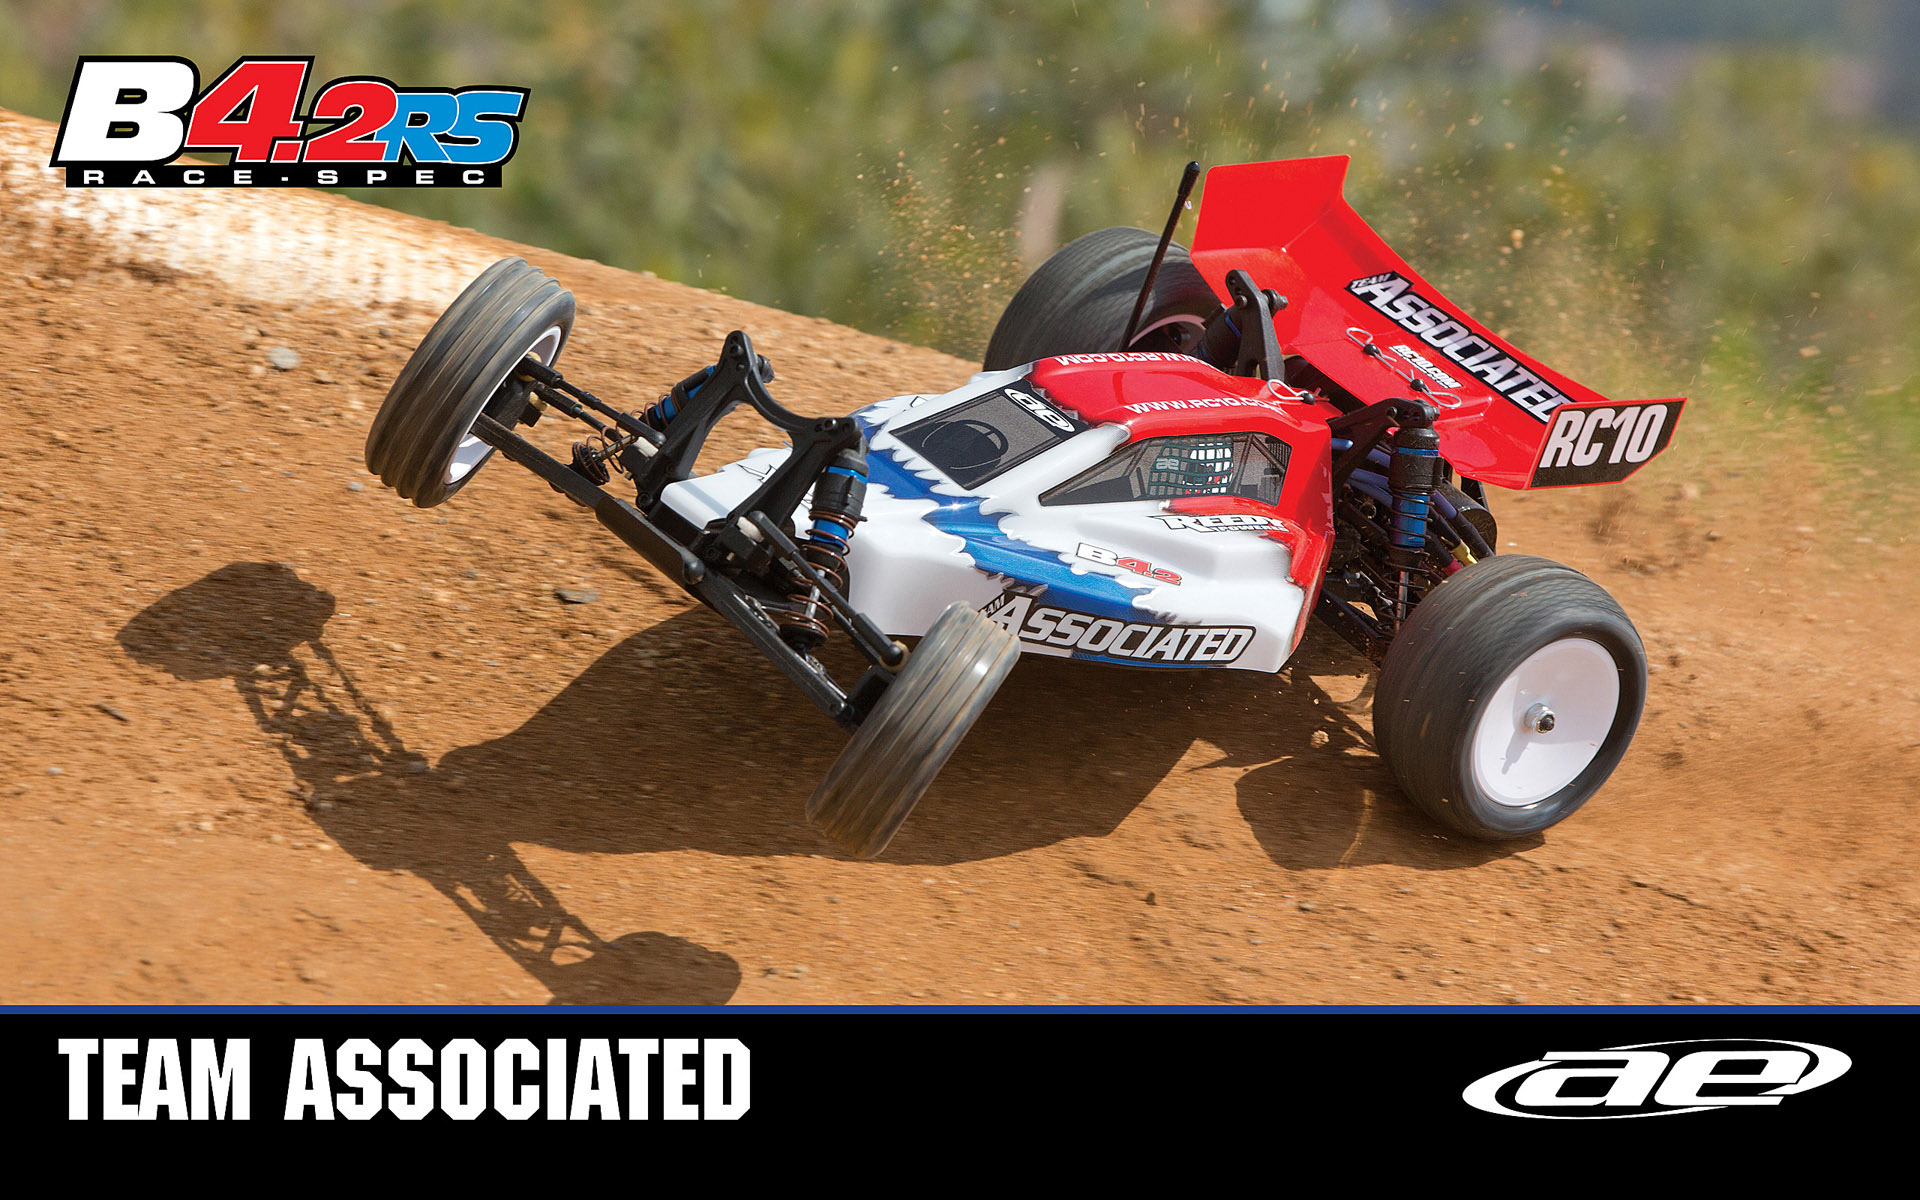 sc10 rc truck wallpaper t4 2 wallpaper rc truck wallpaper Car Pictures 1920x1200